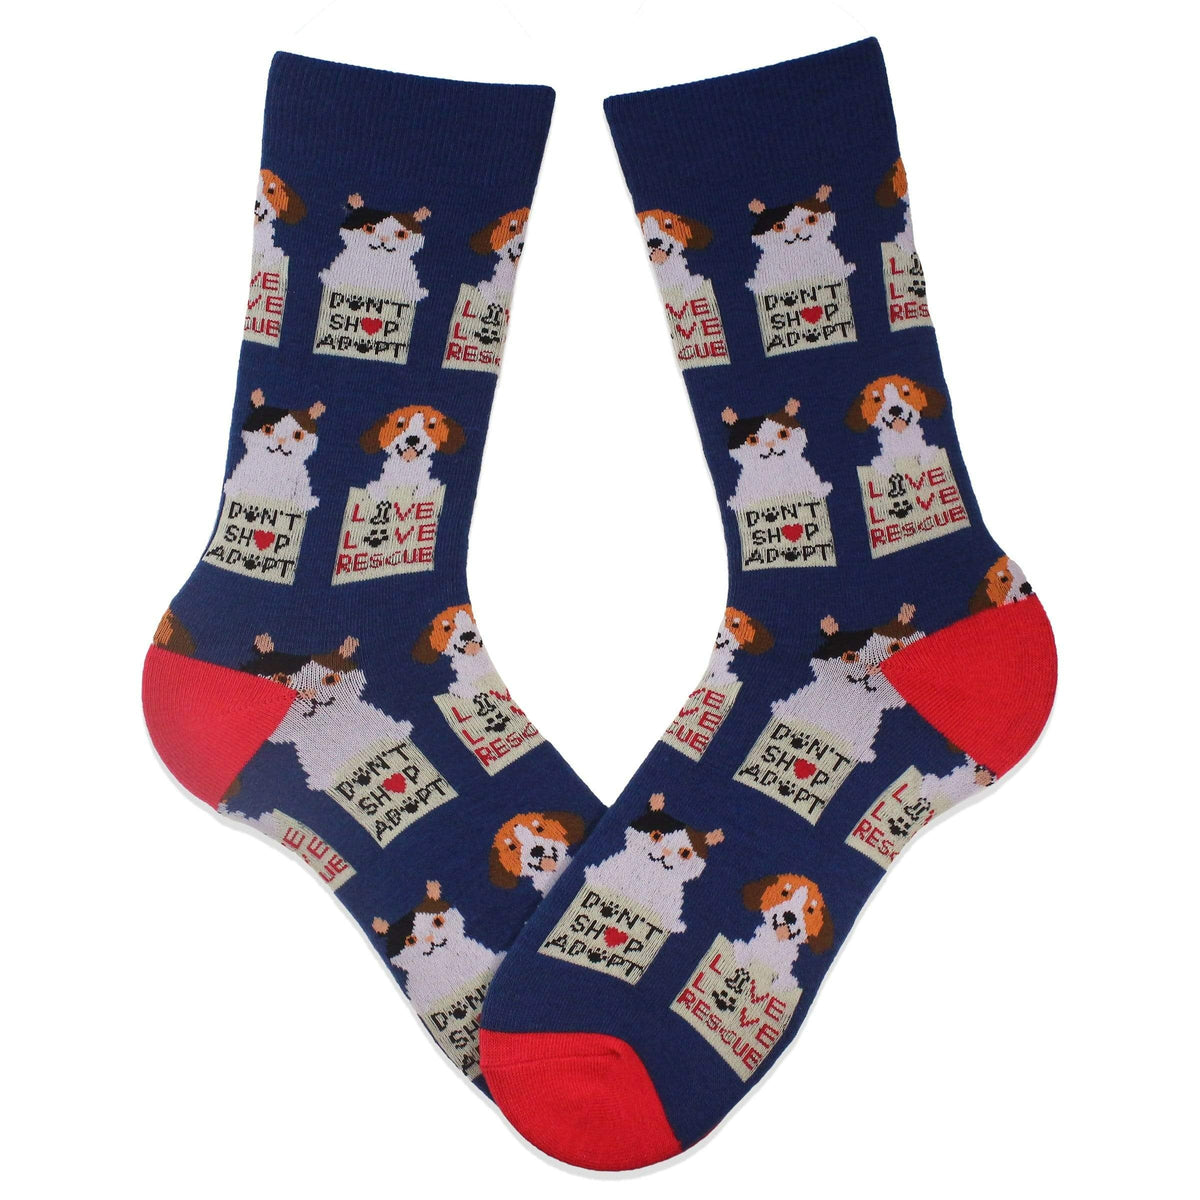 Animal Rescue Pets Adopt Don't Shop Socks Navy / Women's